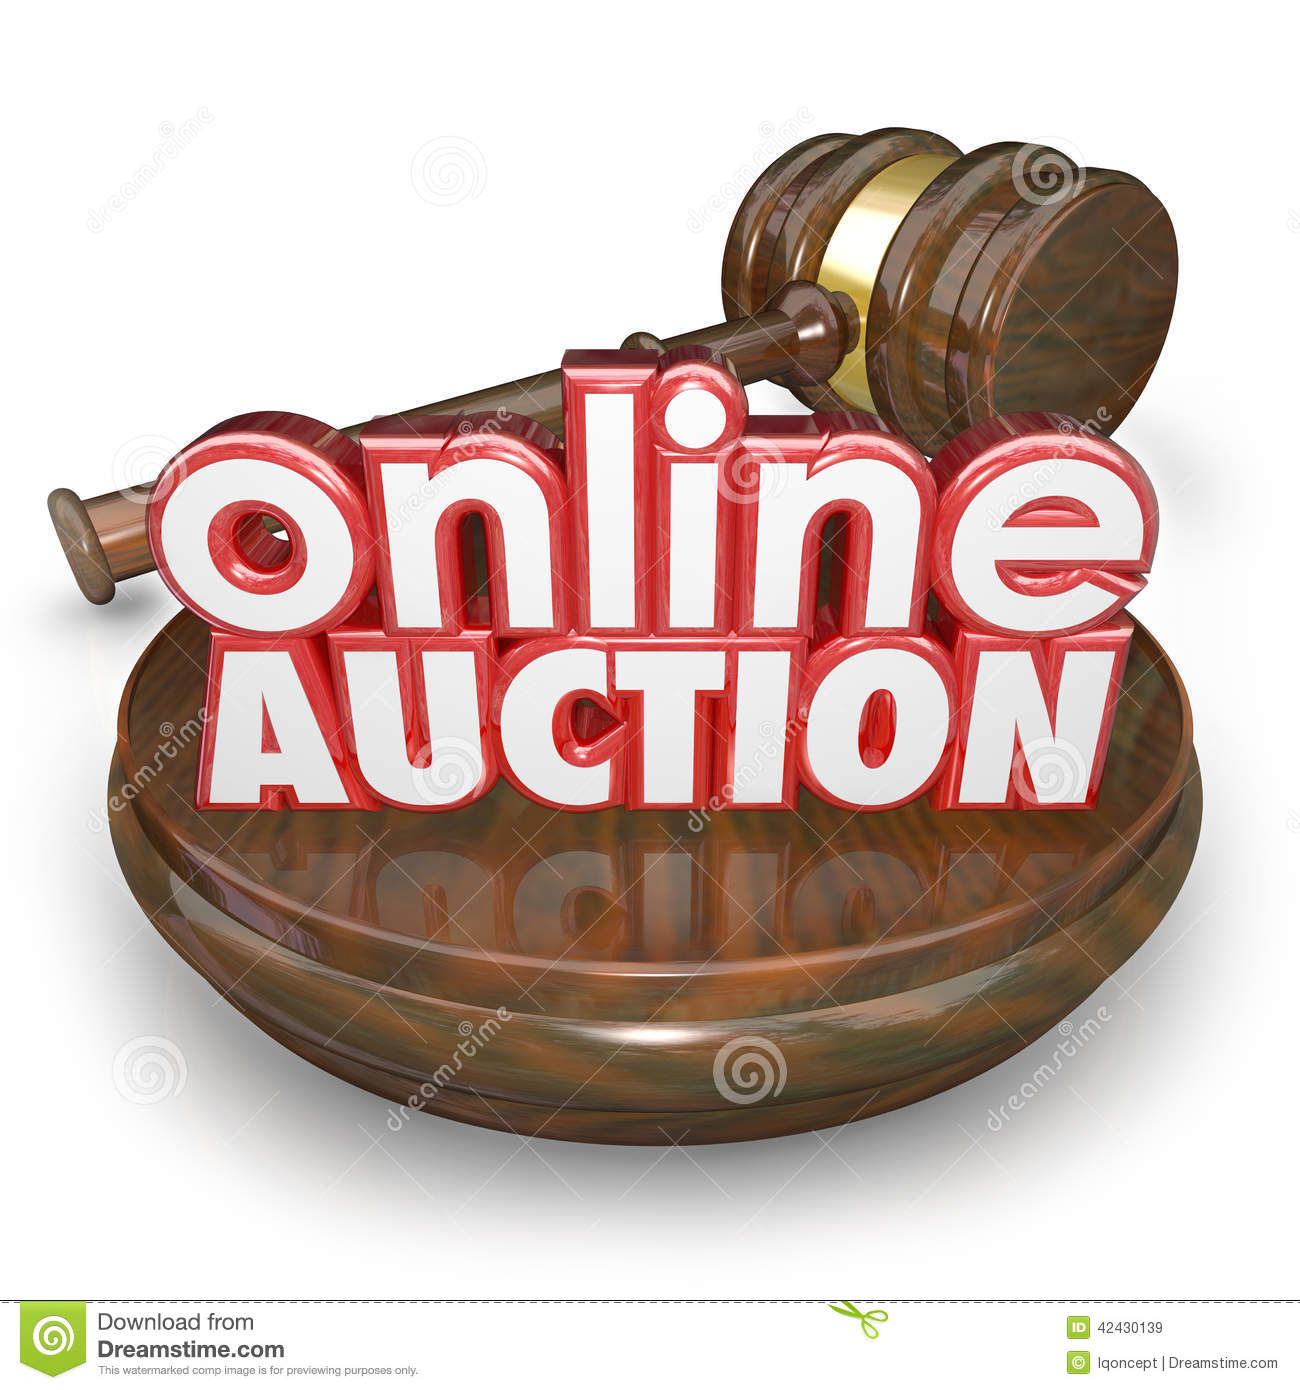 How to Make Money From Auctions